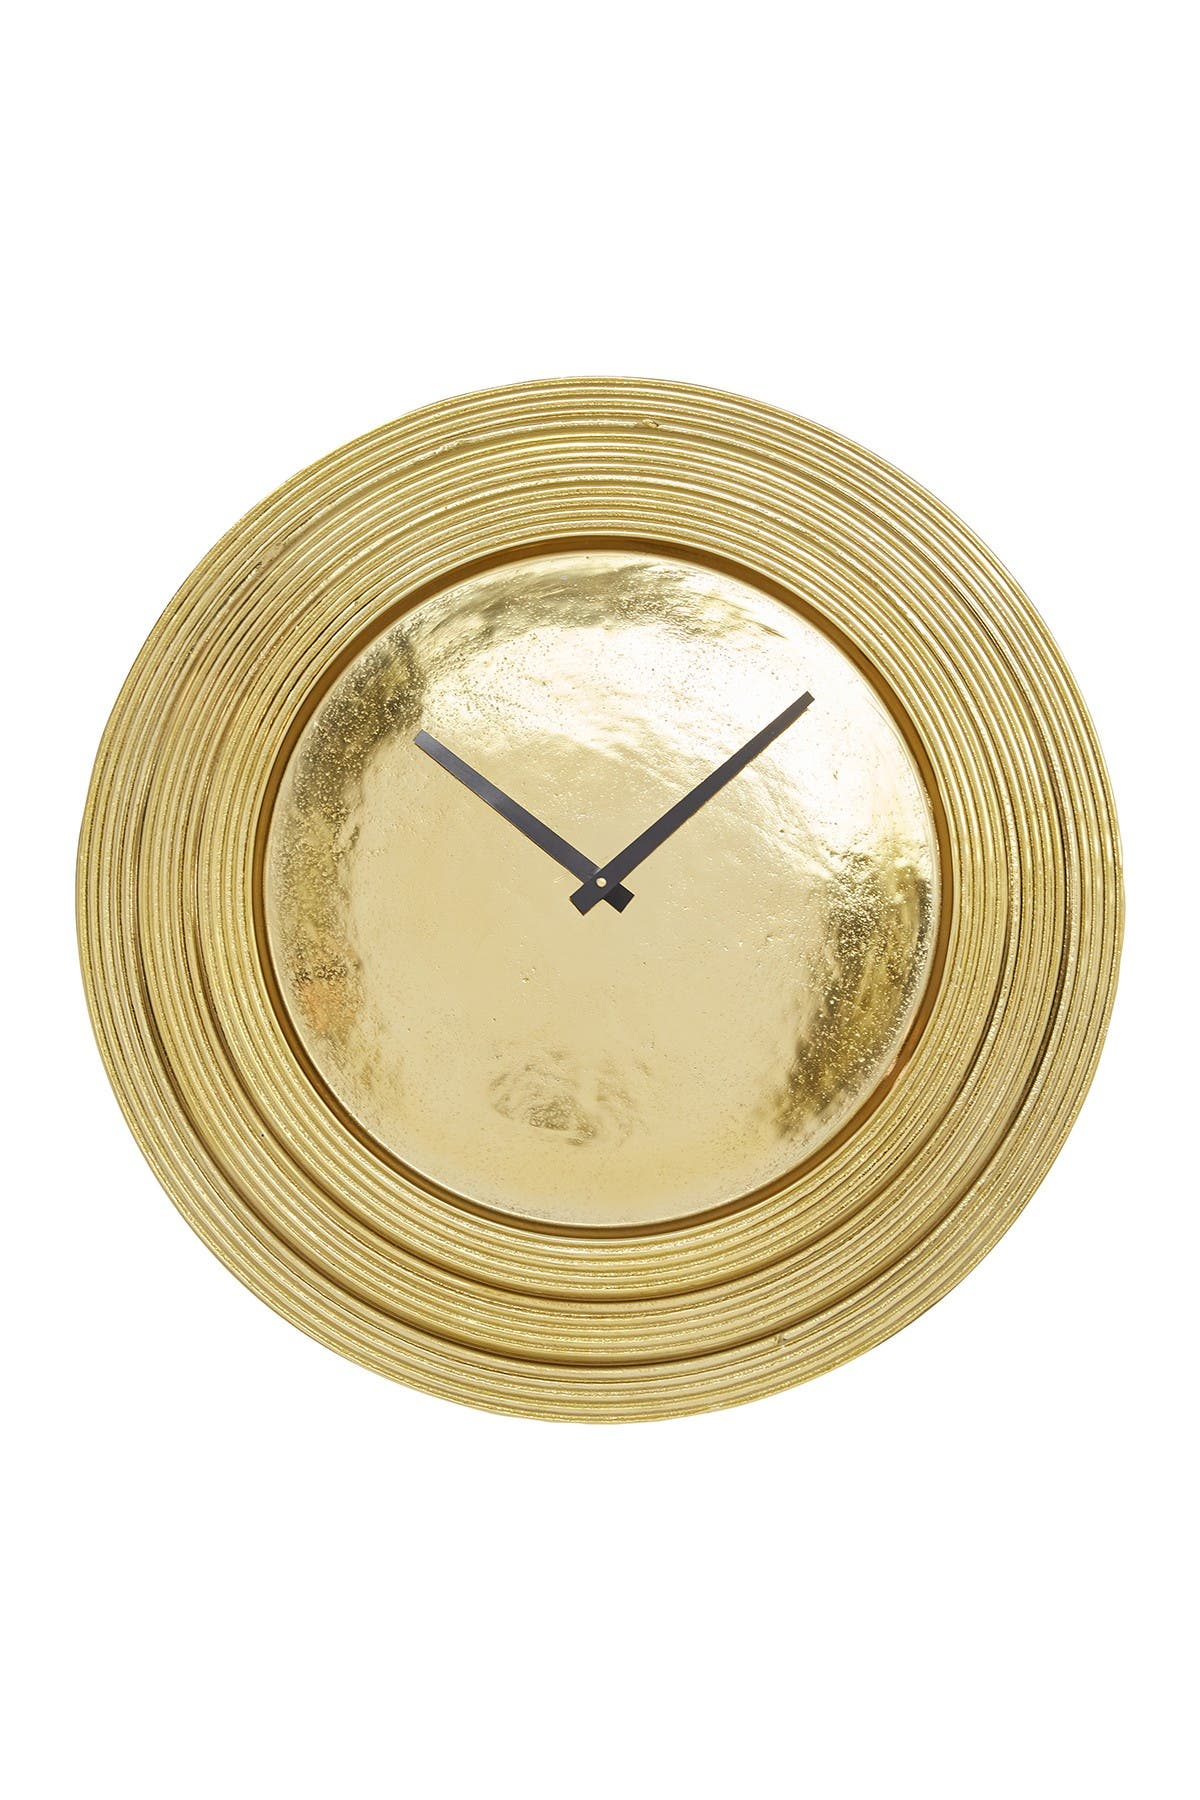 "Image of Willow Row Round Gold Aluminum Layered Rim Wall Clock - 24"" X 24"""